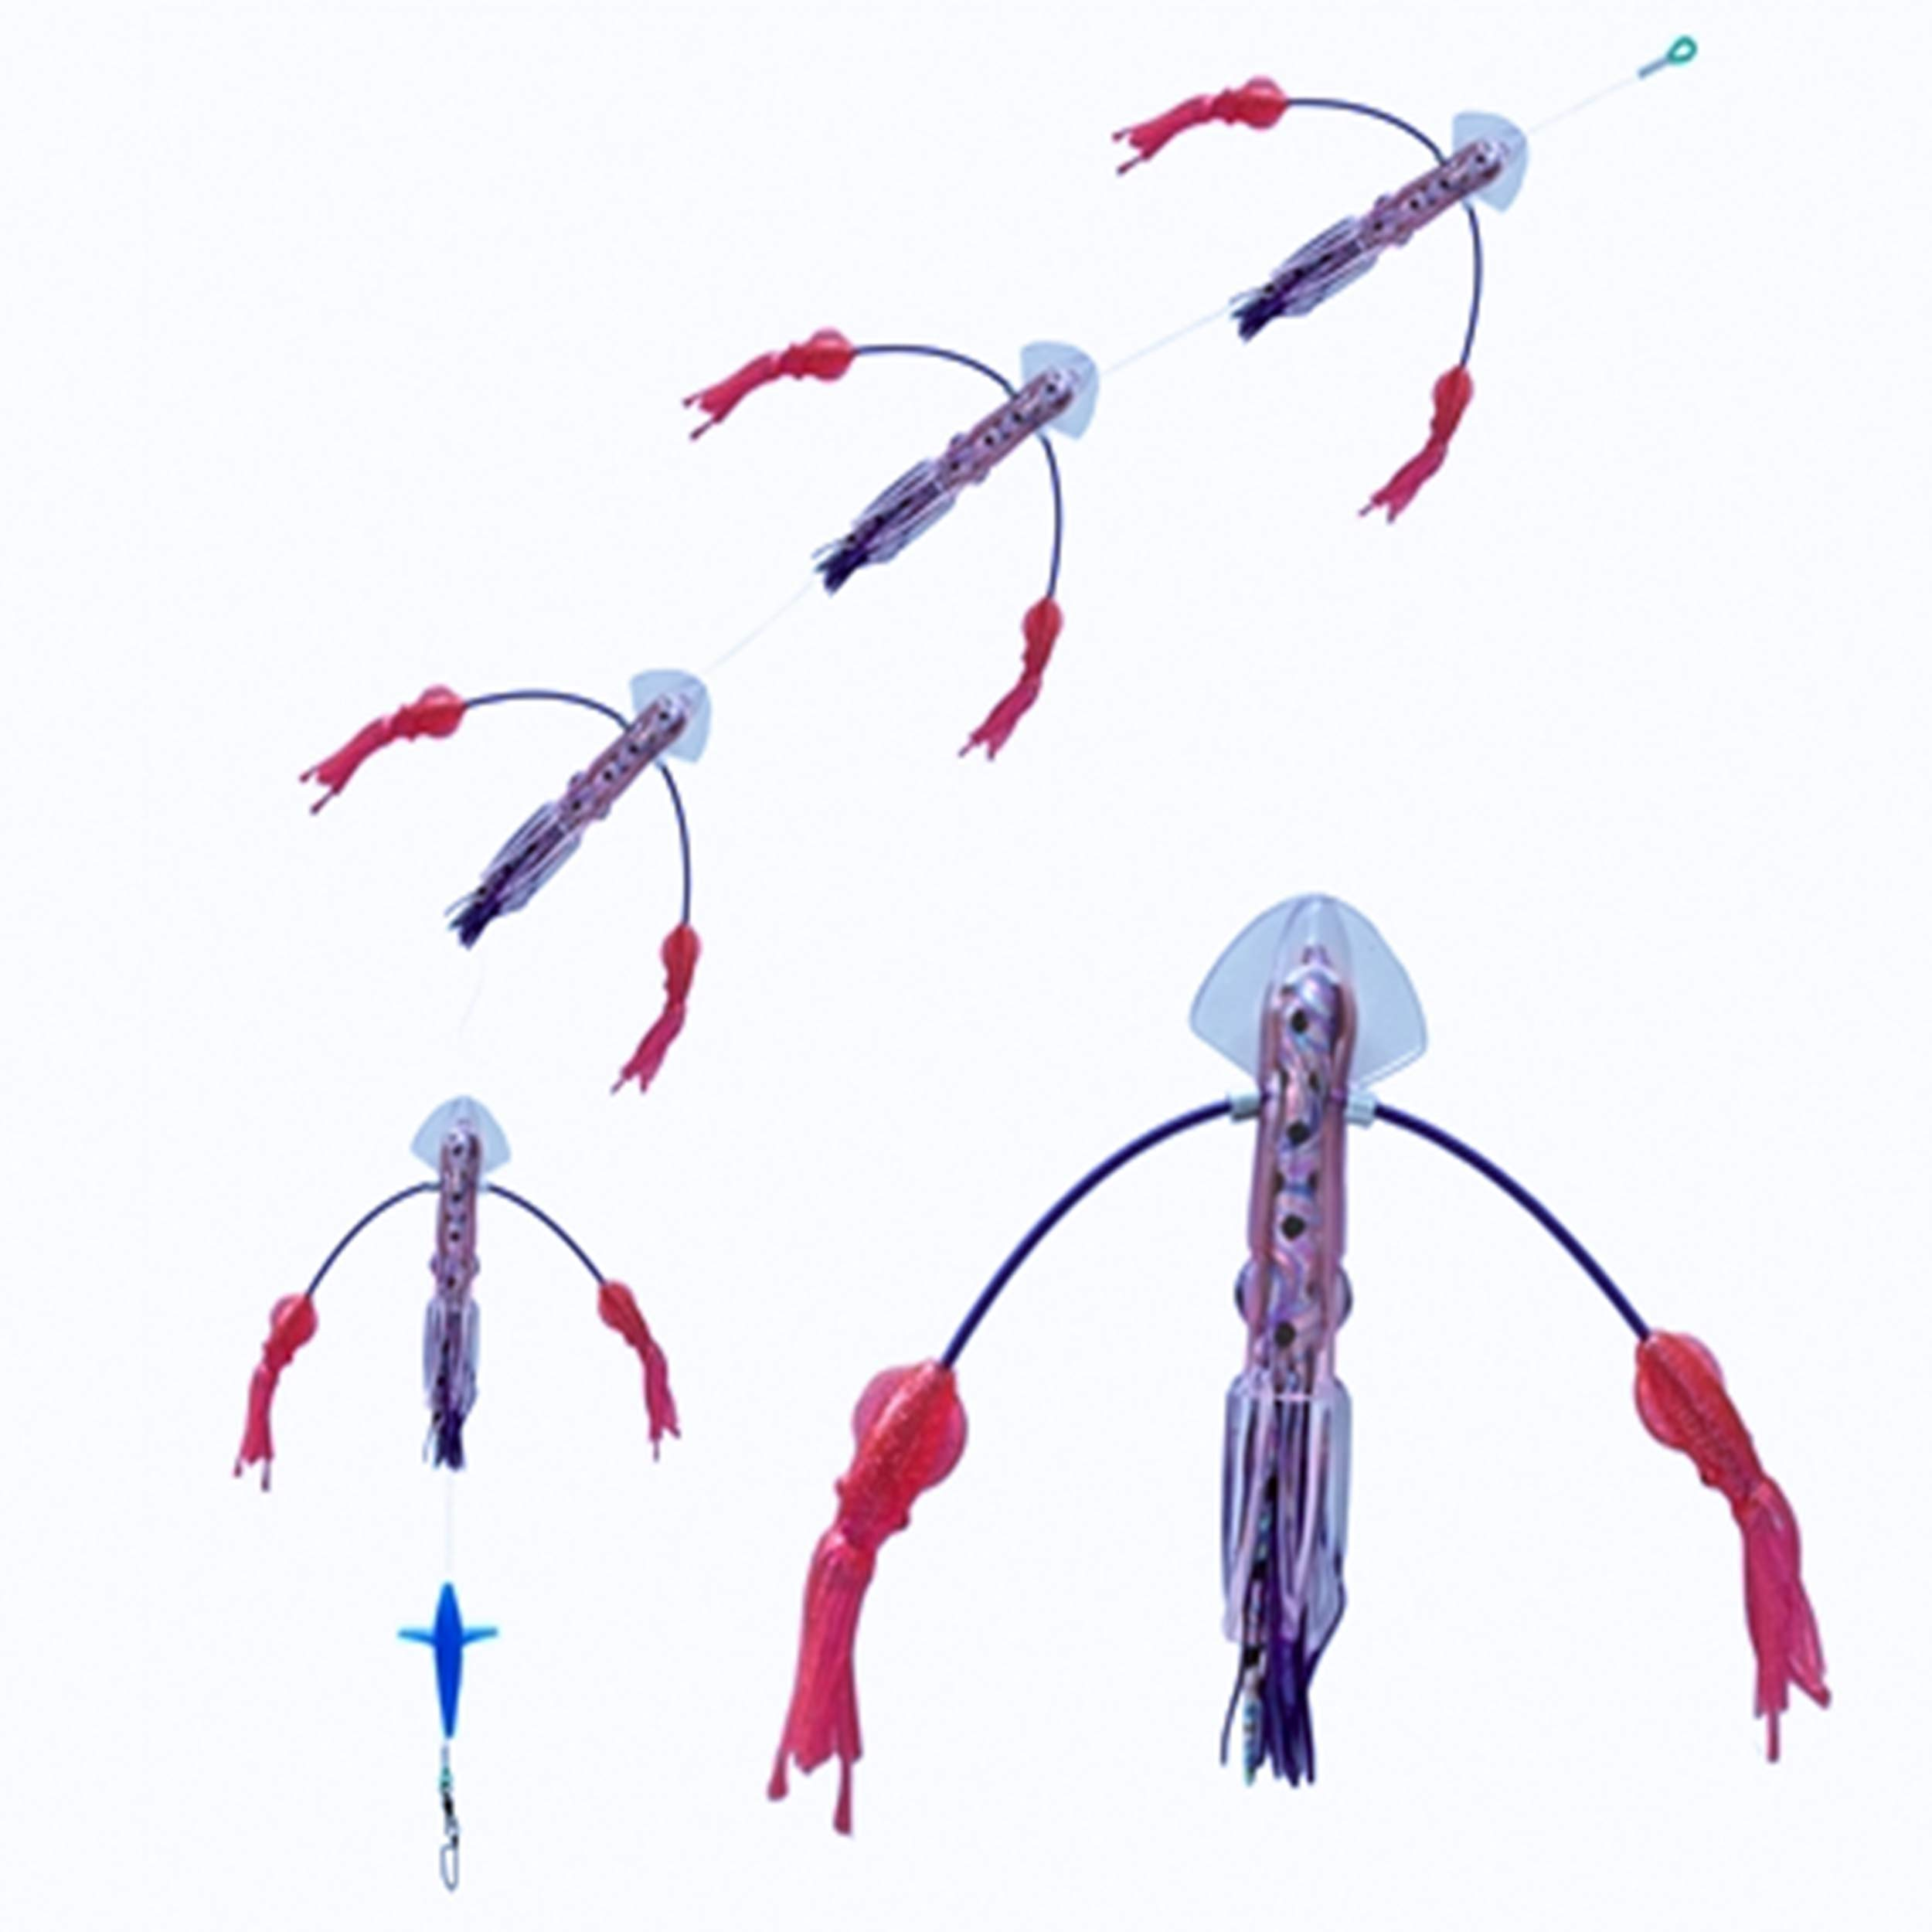 Squidnation Long Tail Flippy Floppy Thing Fishing Daisy Chain Tuna & Marlin Magnet (1143)